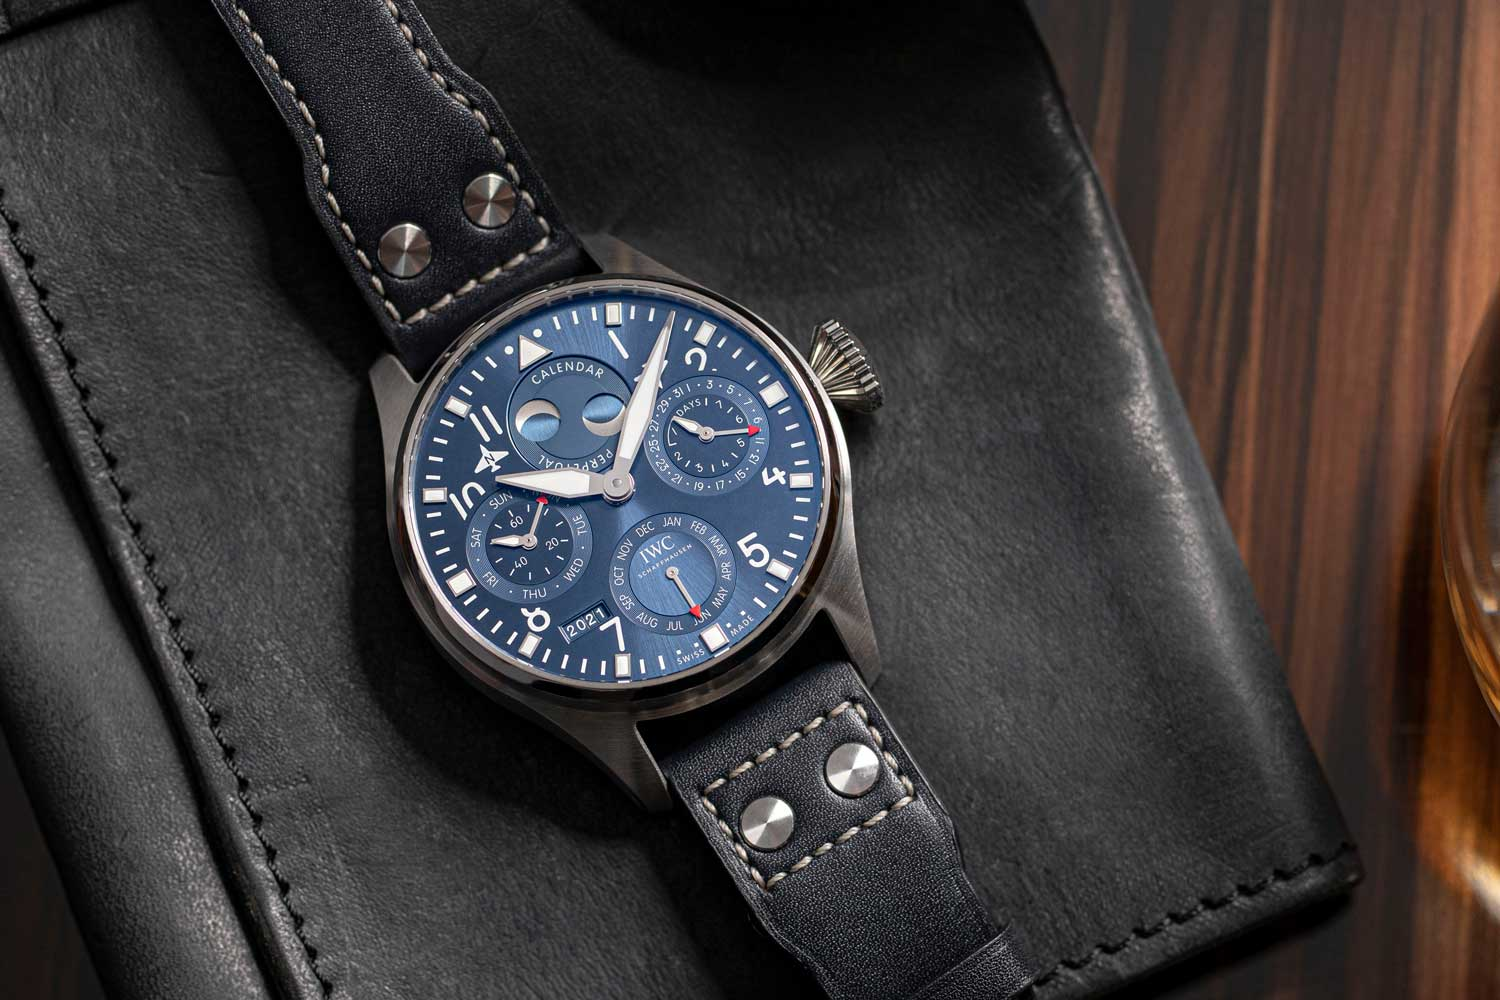 The Big Pilot Watch Perpetual Calendar has a sub-dial at 12 o'clock that presents a perpetual double moon phase display accurate for both the northern and southern hemispheres.(Image: Revolution)